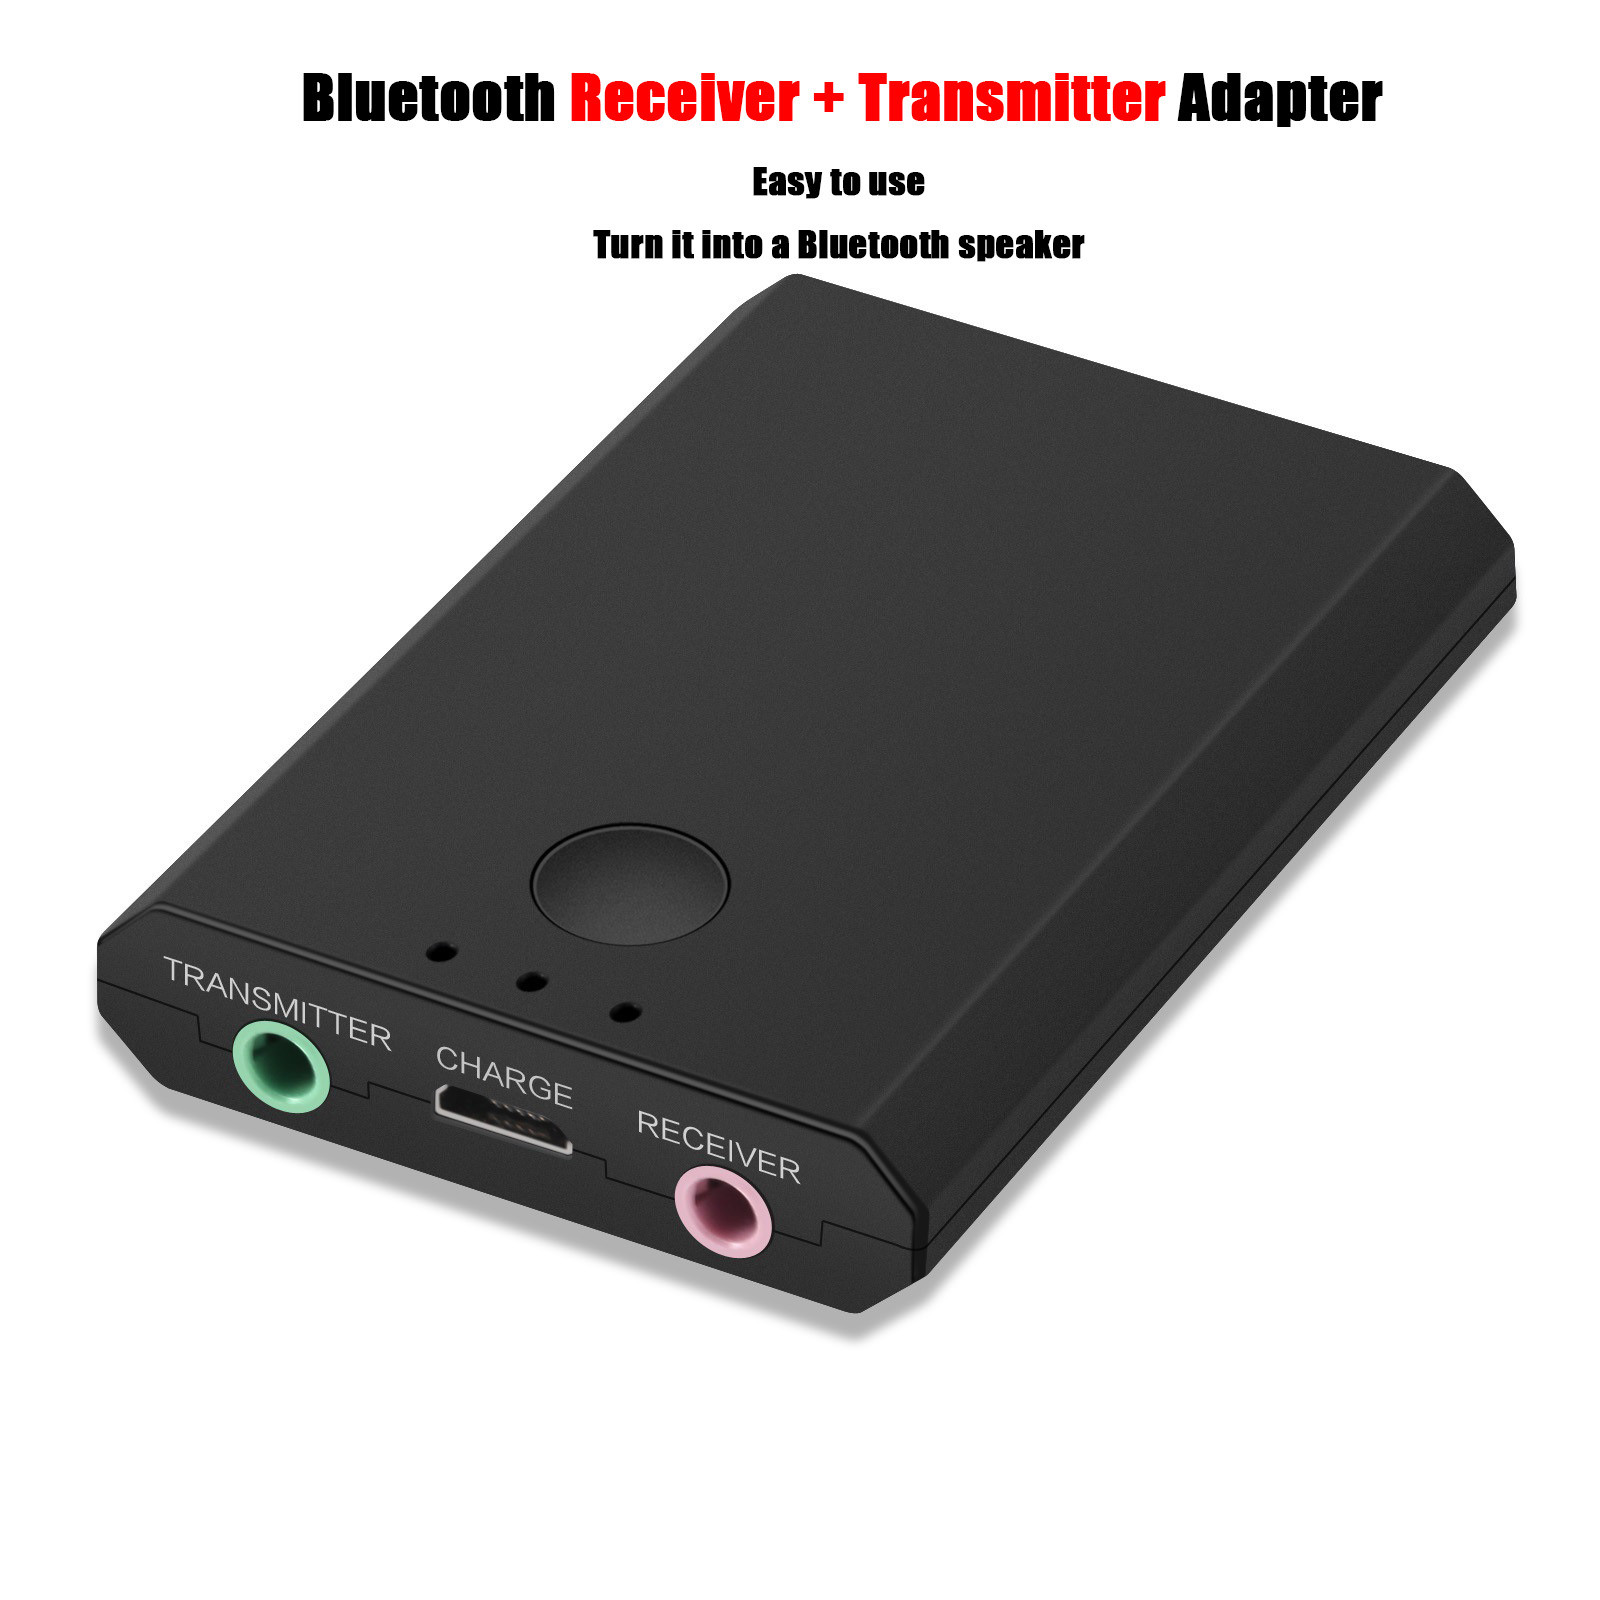 LEORY DC 5V 3.5mm Bluetooth 4.2 Adapter Transmitter Receiver Audio Adapter for TV Headphones Phone A2DP,AVRCP